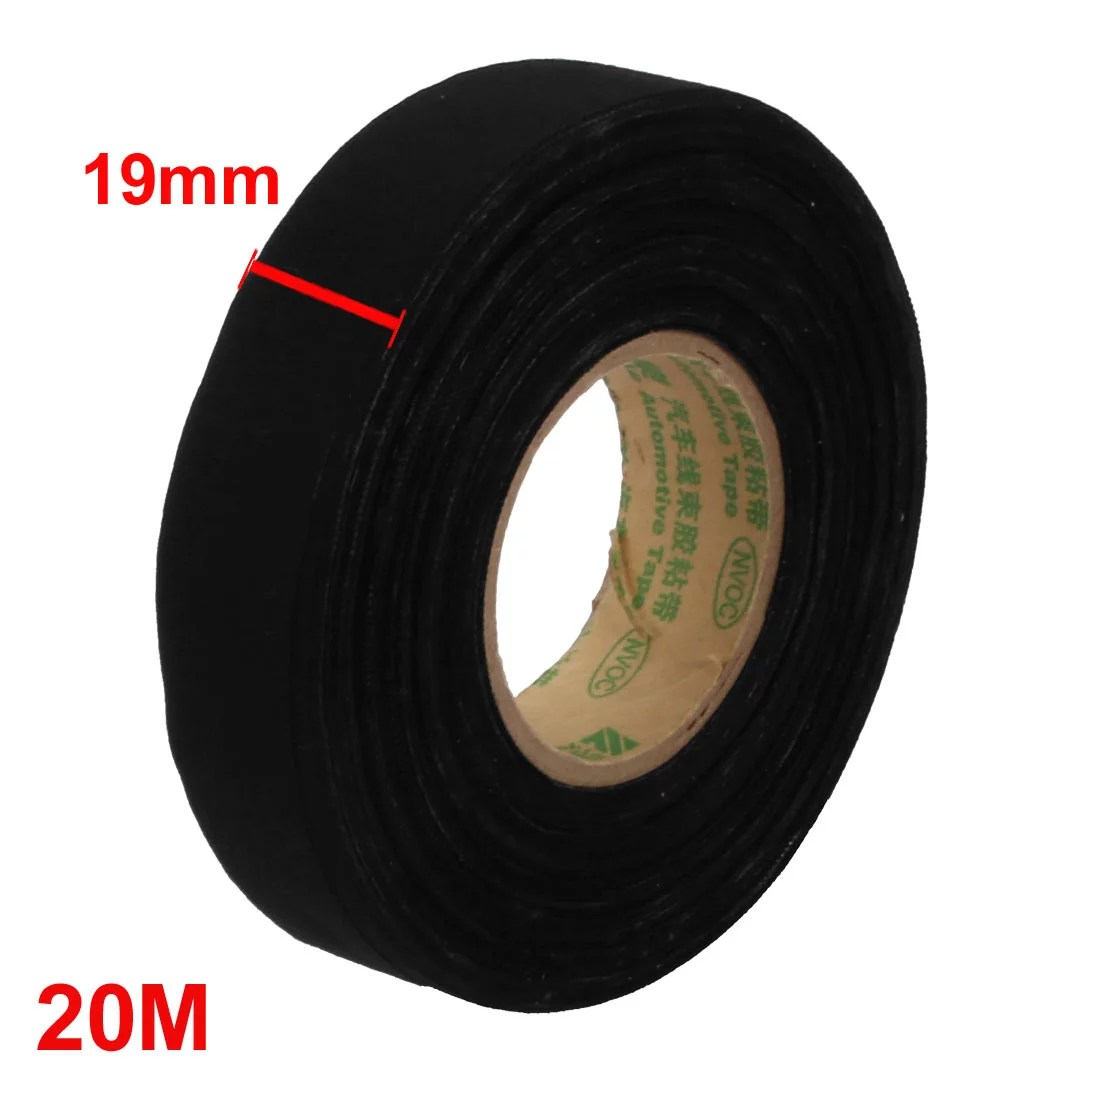 medium resolution of unique bargains black 20m long 19mm width insulation adhesive cloth tape car wire harness tape